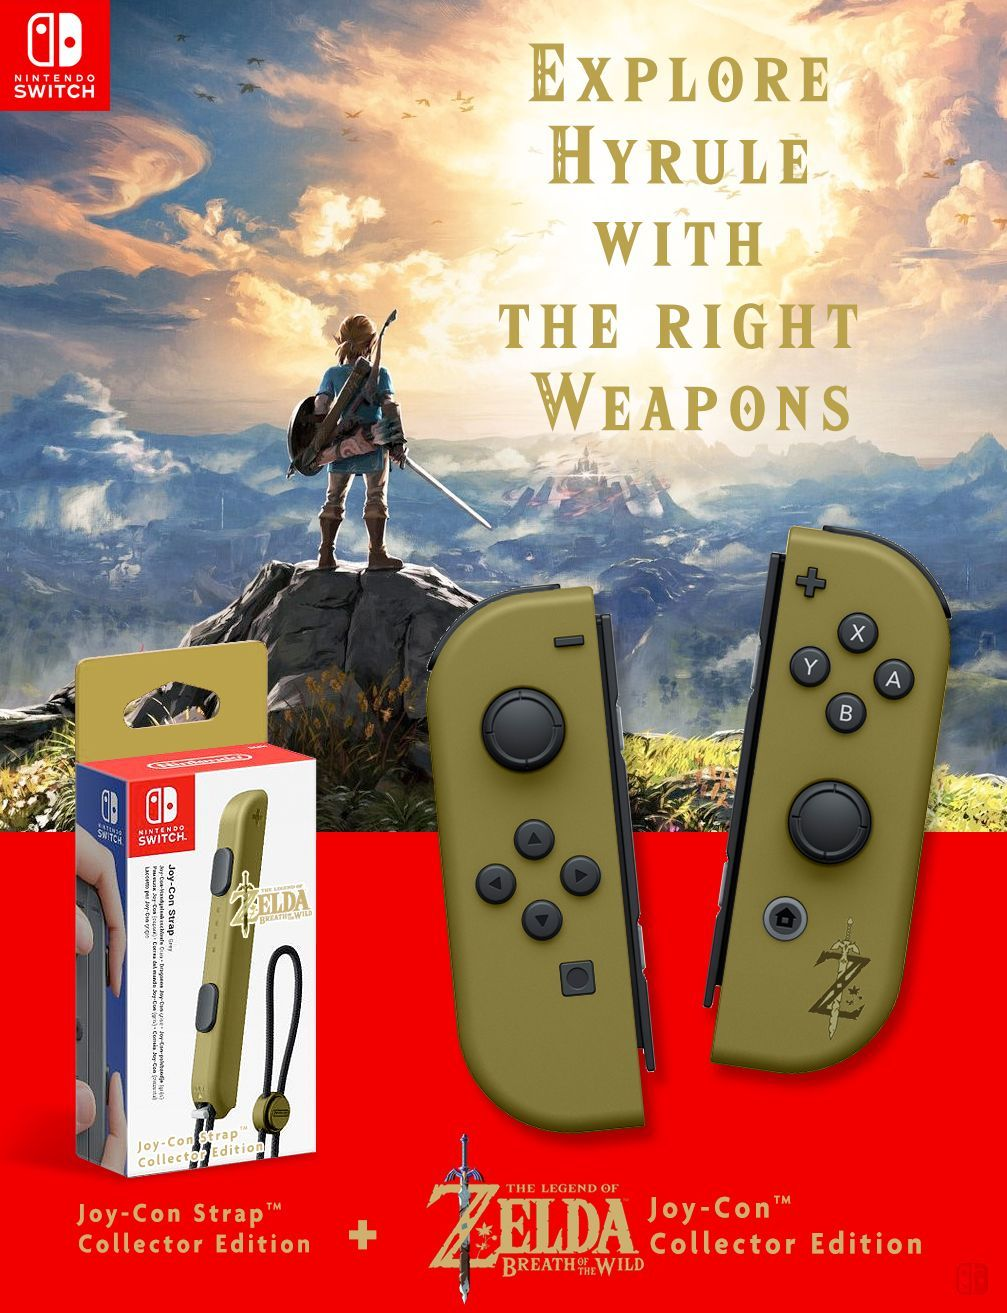 Pin by The Video Game Life on All About Nintendo | Pinterest ...